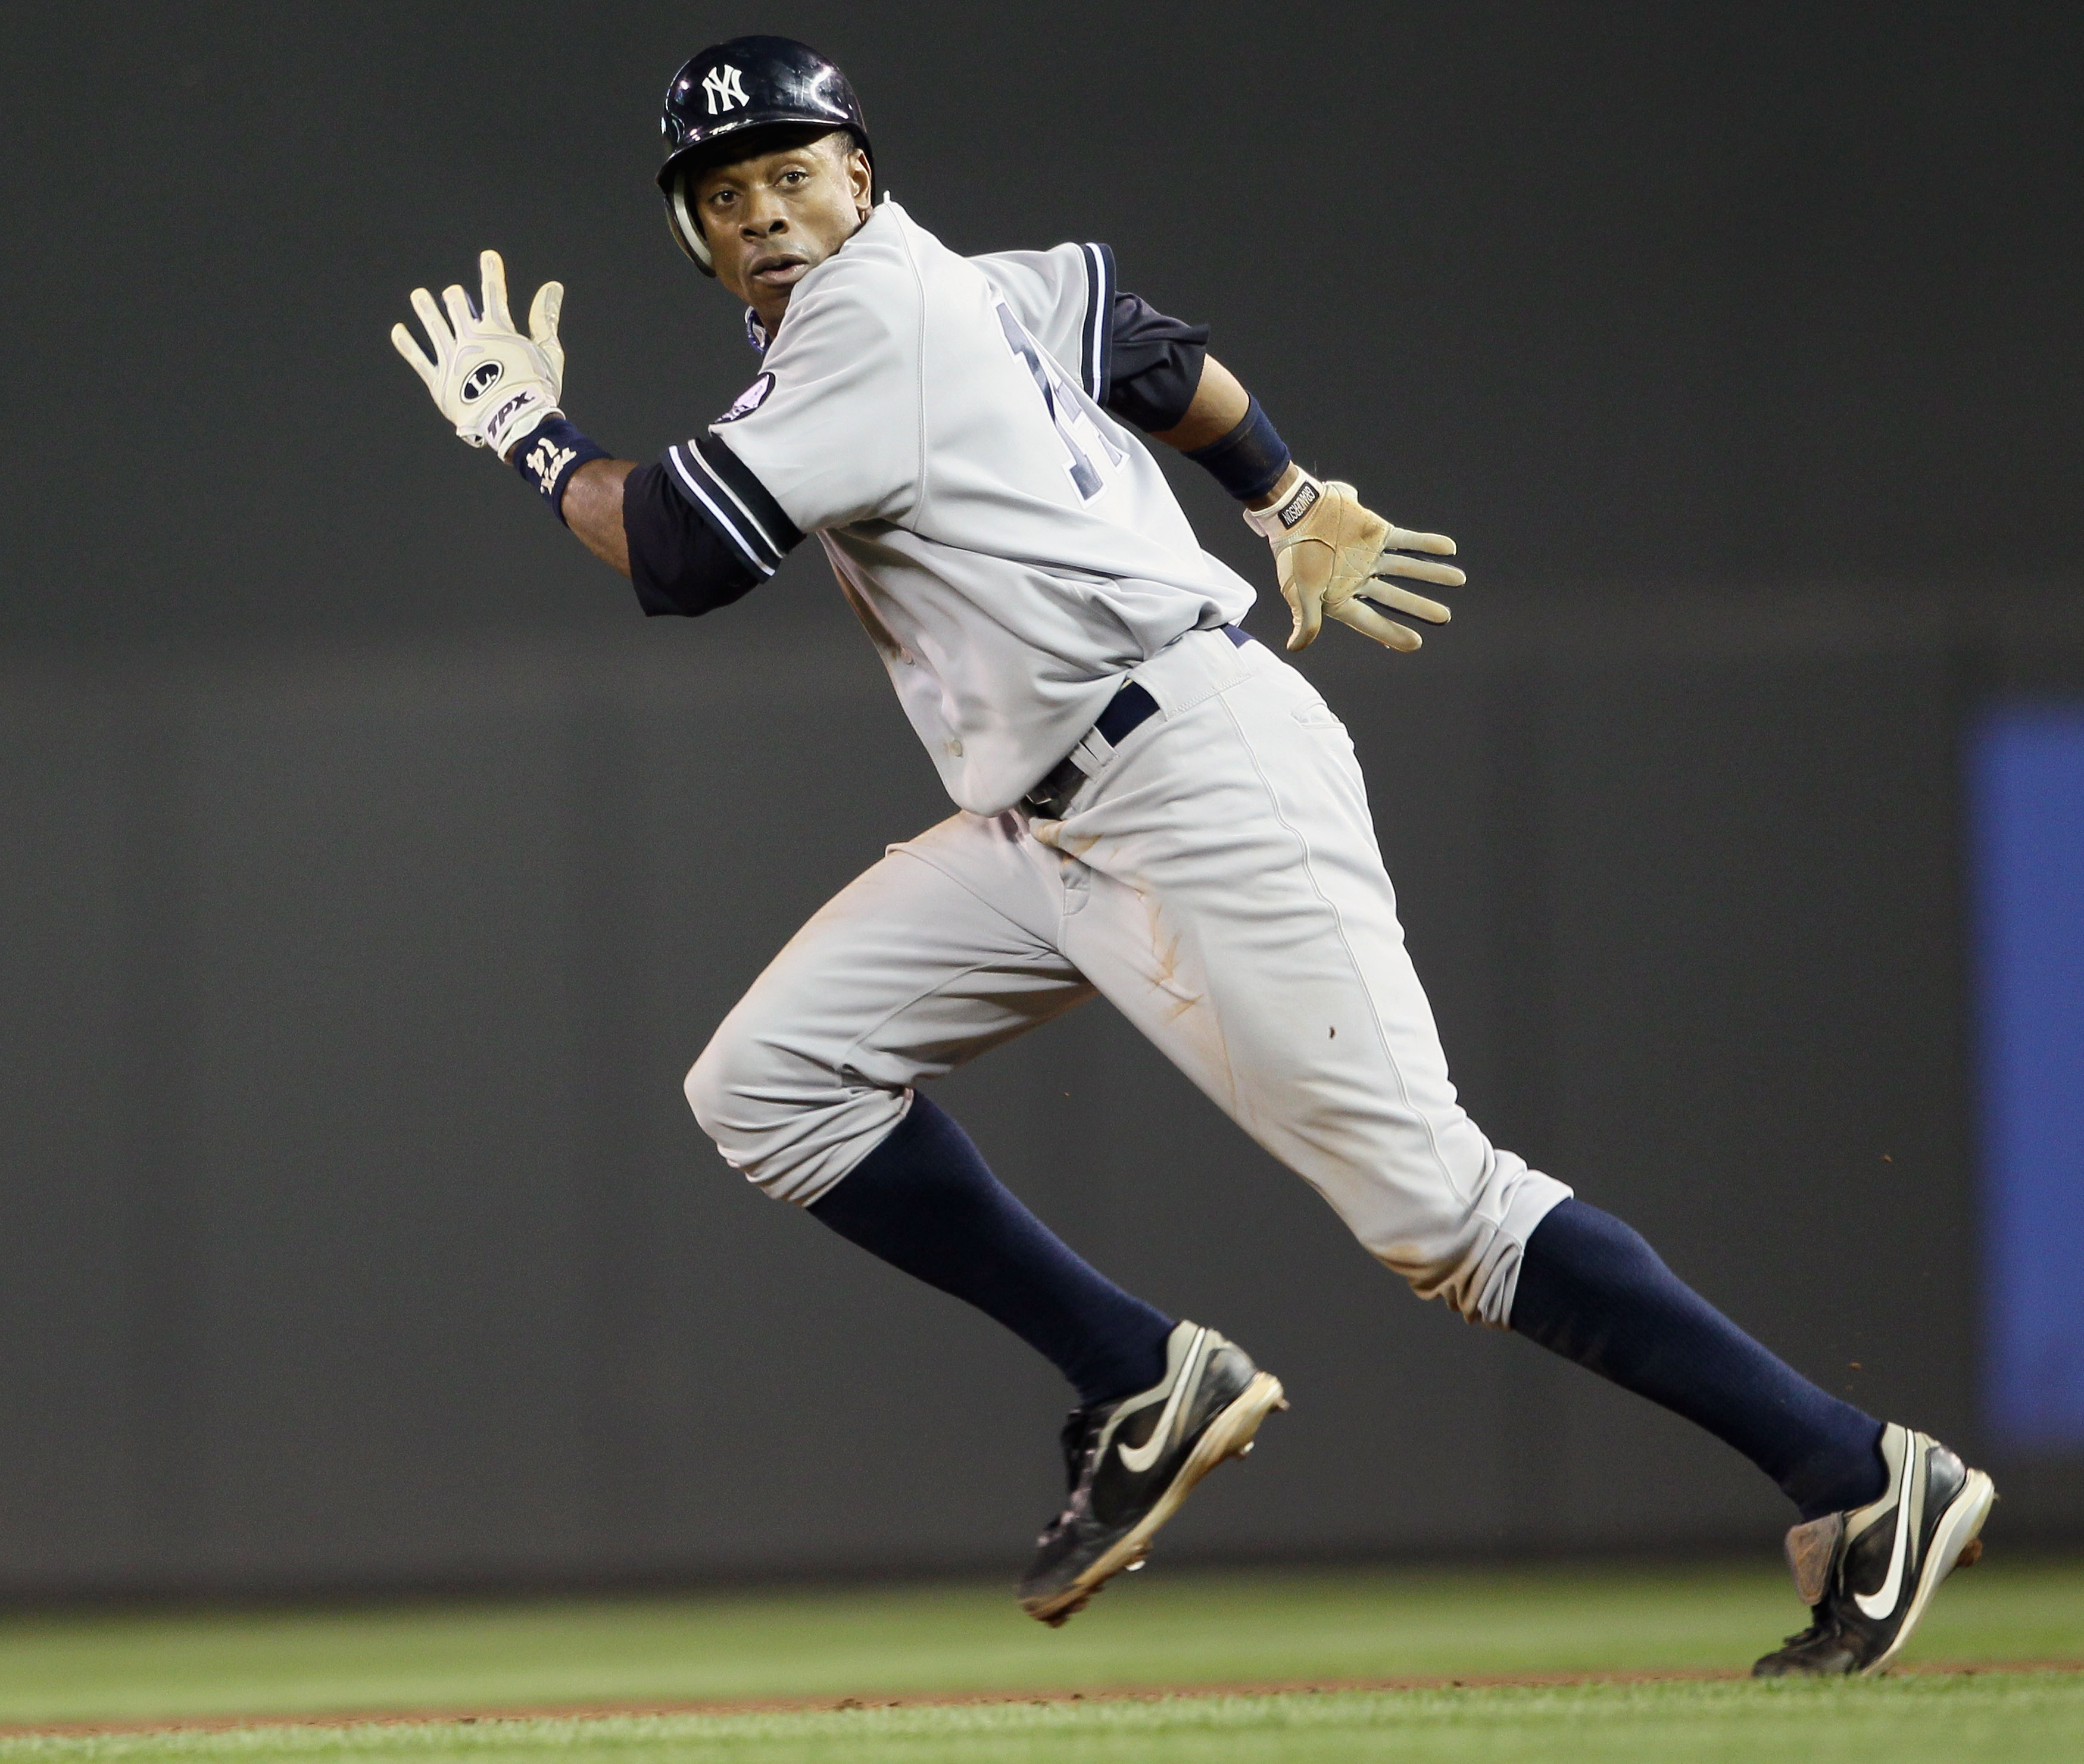 MINNEAPOLIS - OCTOBER 07:  Curtis Granderson #14 of the New York Yankees runs to second base against the Minnesota Twins during game two of the ALDS on October 7, 2010 at Target Field in Minneapolis, Minnesota. The Yankees beat the Twins 5-2.(Photo by Els